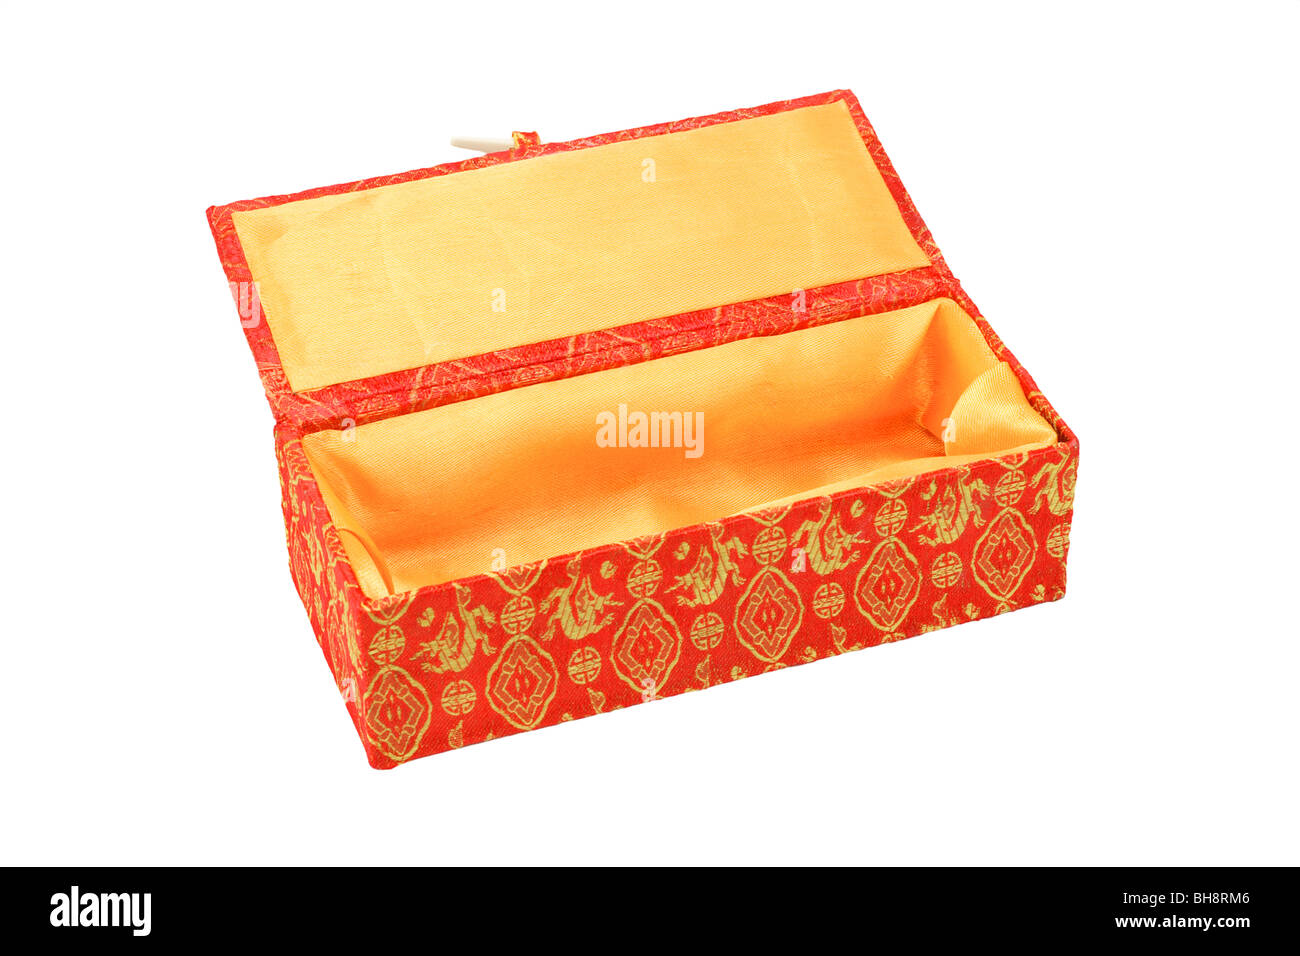 Empty red Chinese new year gift box with floral design on white background - Stock Image